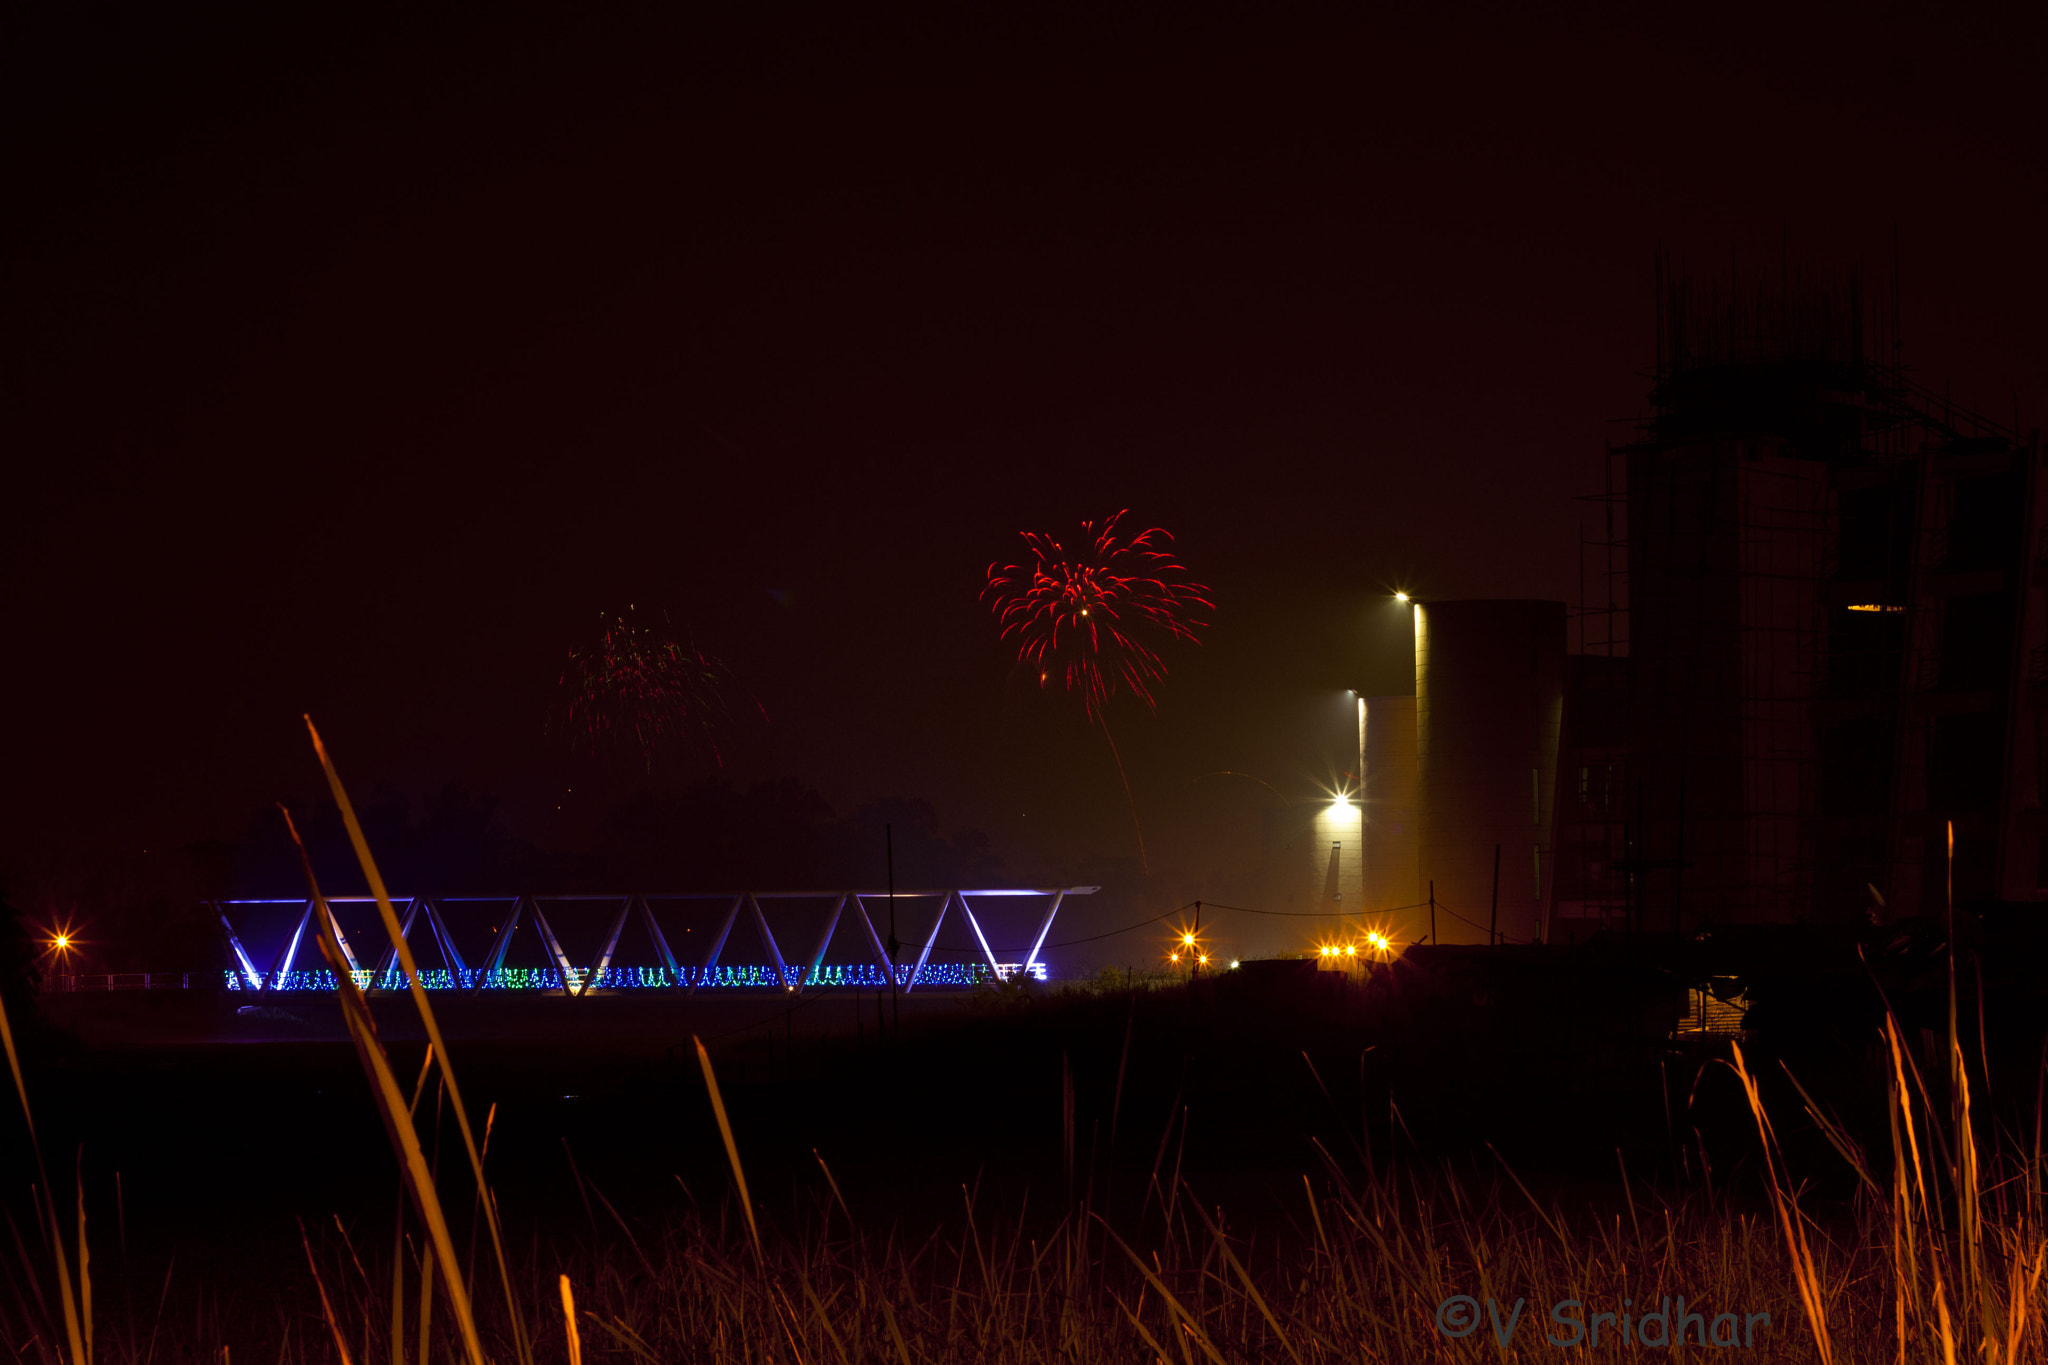 Photograph Fireworks at IIMC by Sridhar Vedaprasad on 500px